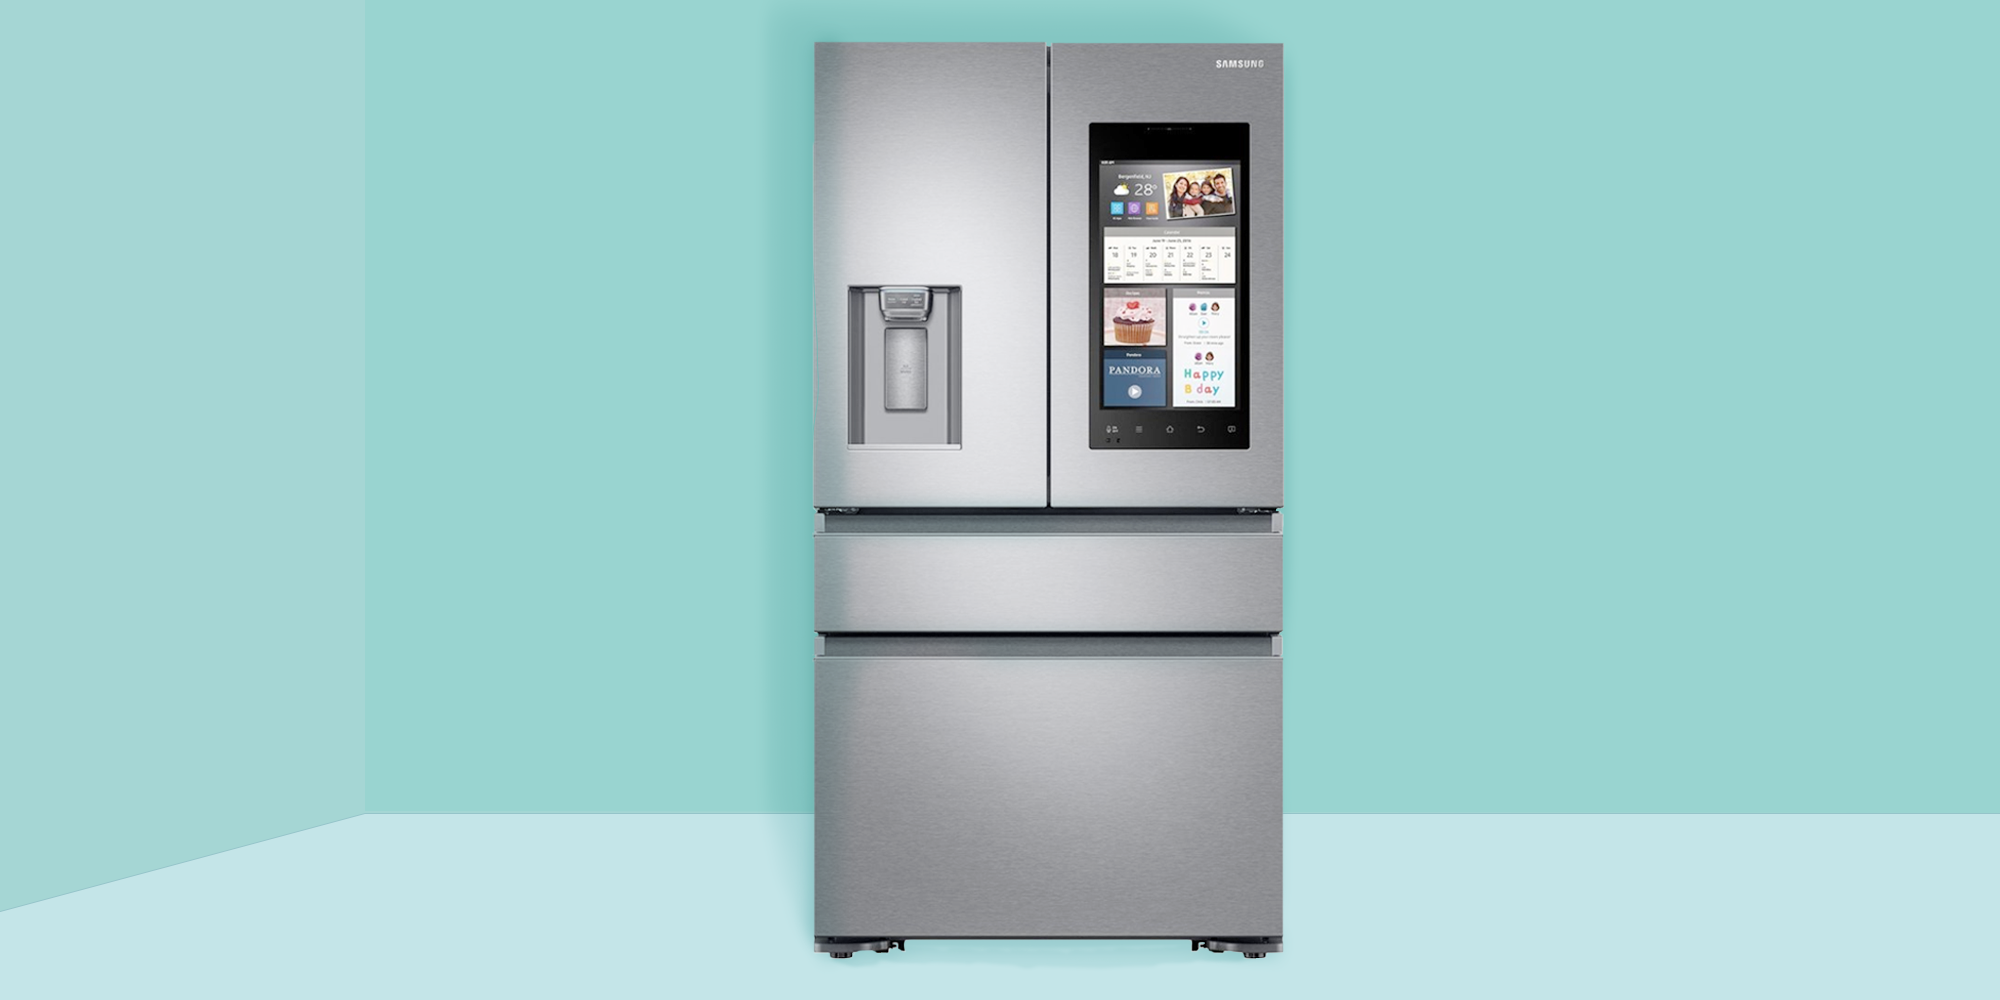 7 Best Counter-Depth Refrigerators, According to Kitchen